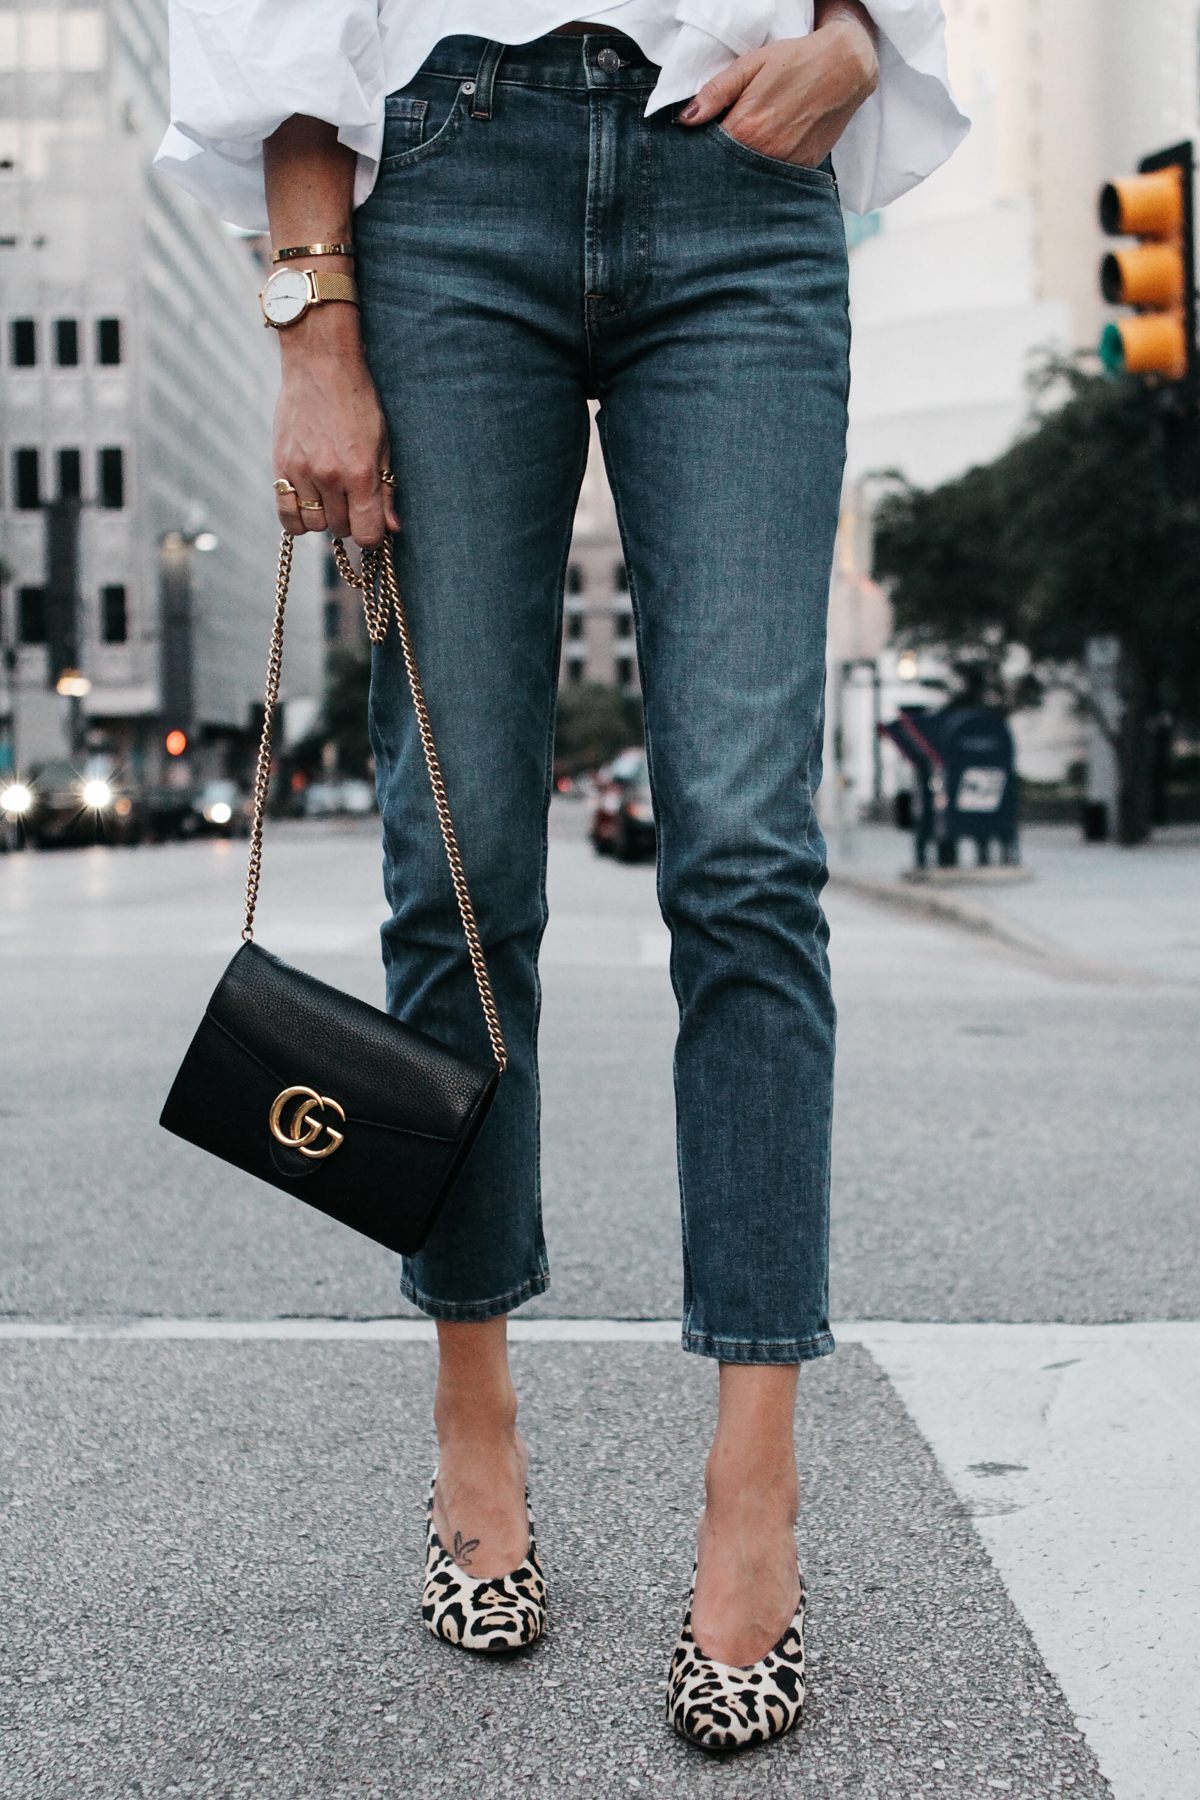 Everlane Boyfriend Jeans Gucci Marmont Handbag Club Monaco Leopard Heels Fashion Jackson Dallas Blogger Fashion Blogger Street Style